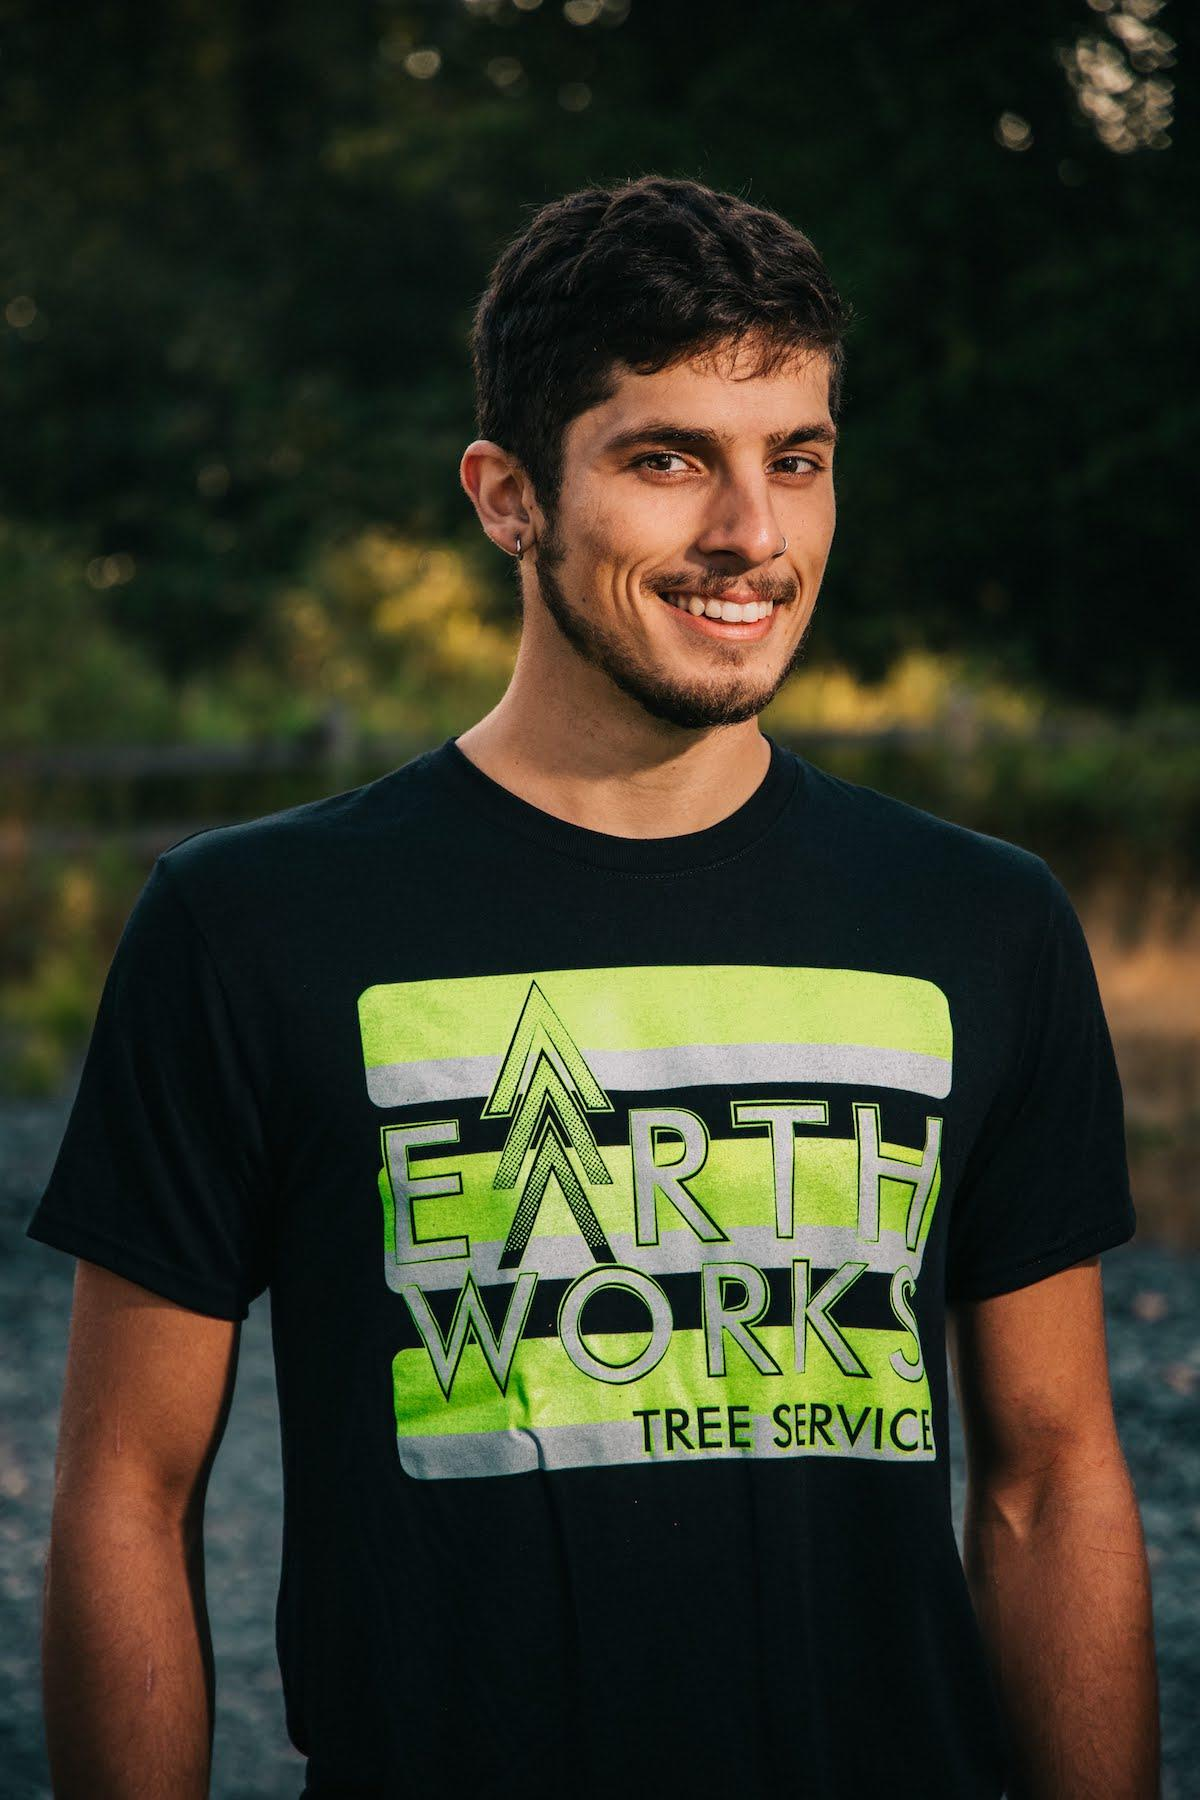 Earthworks Tree Service